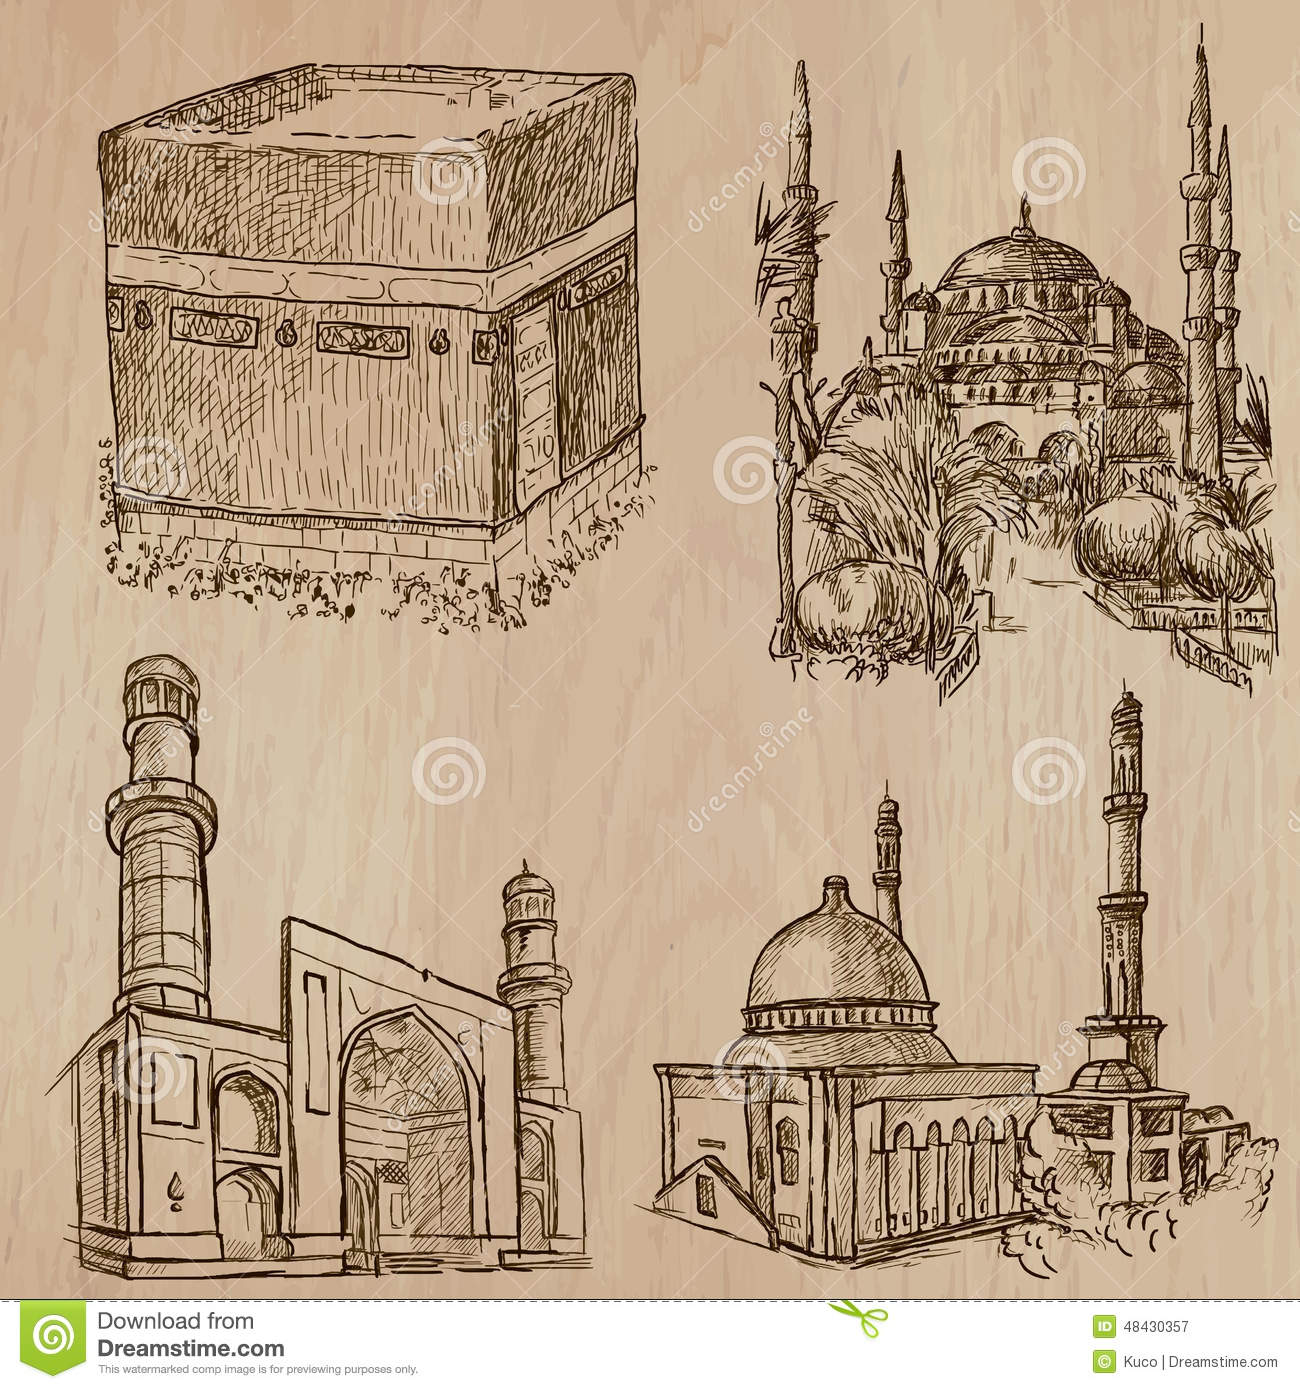 Architectural Drawings Of Famous Buildings famous places and architecture - hand drawings stock illustration